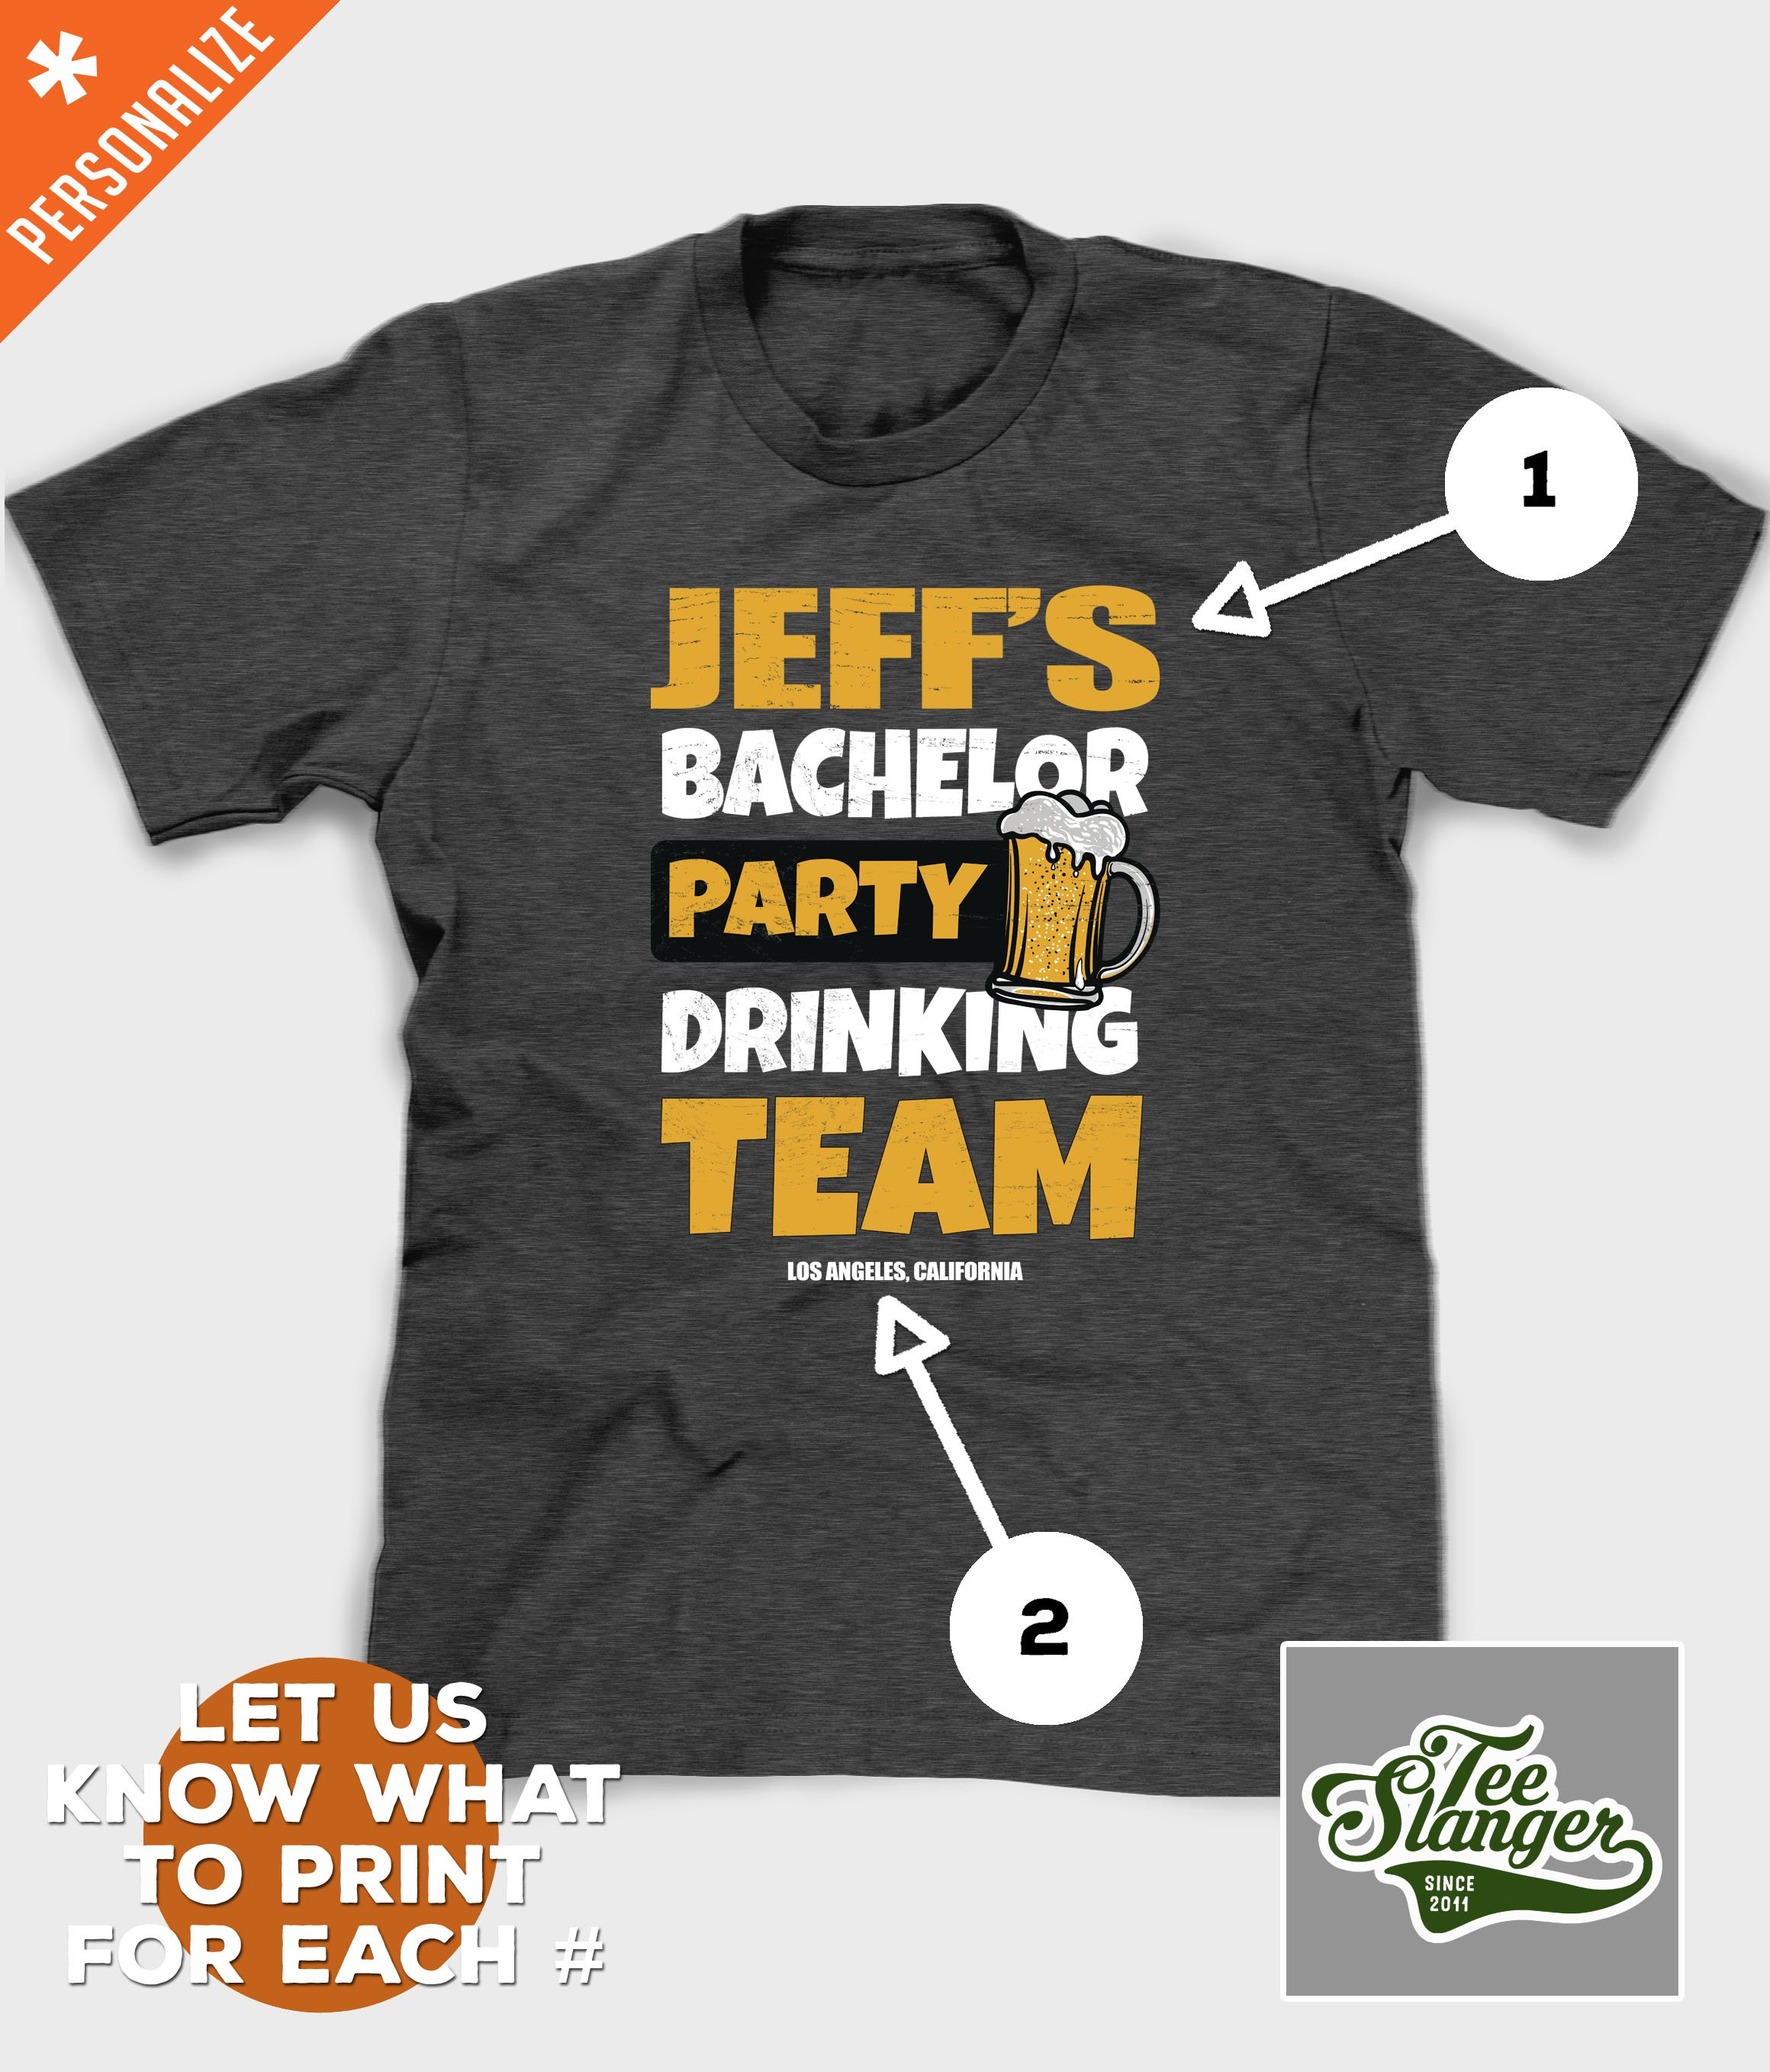 5d0e6c258 PERSONALIZED BACHELOR PARTY DRINKING TEAM t-shirt We SHIP FREE everyday,  all day. #bachelorparty #bachelors #weddingparty